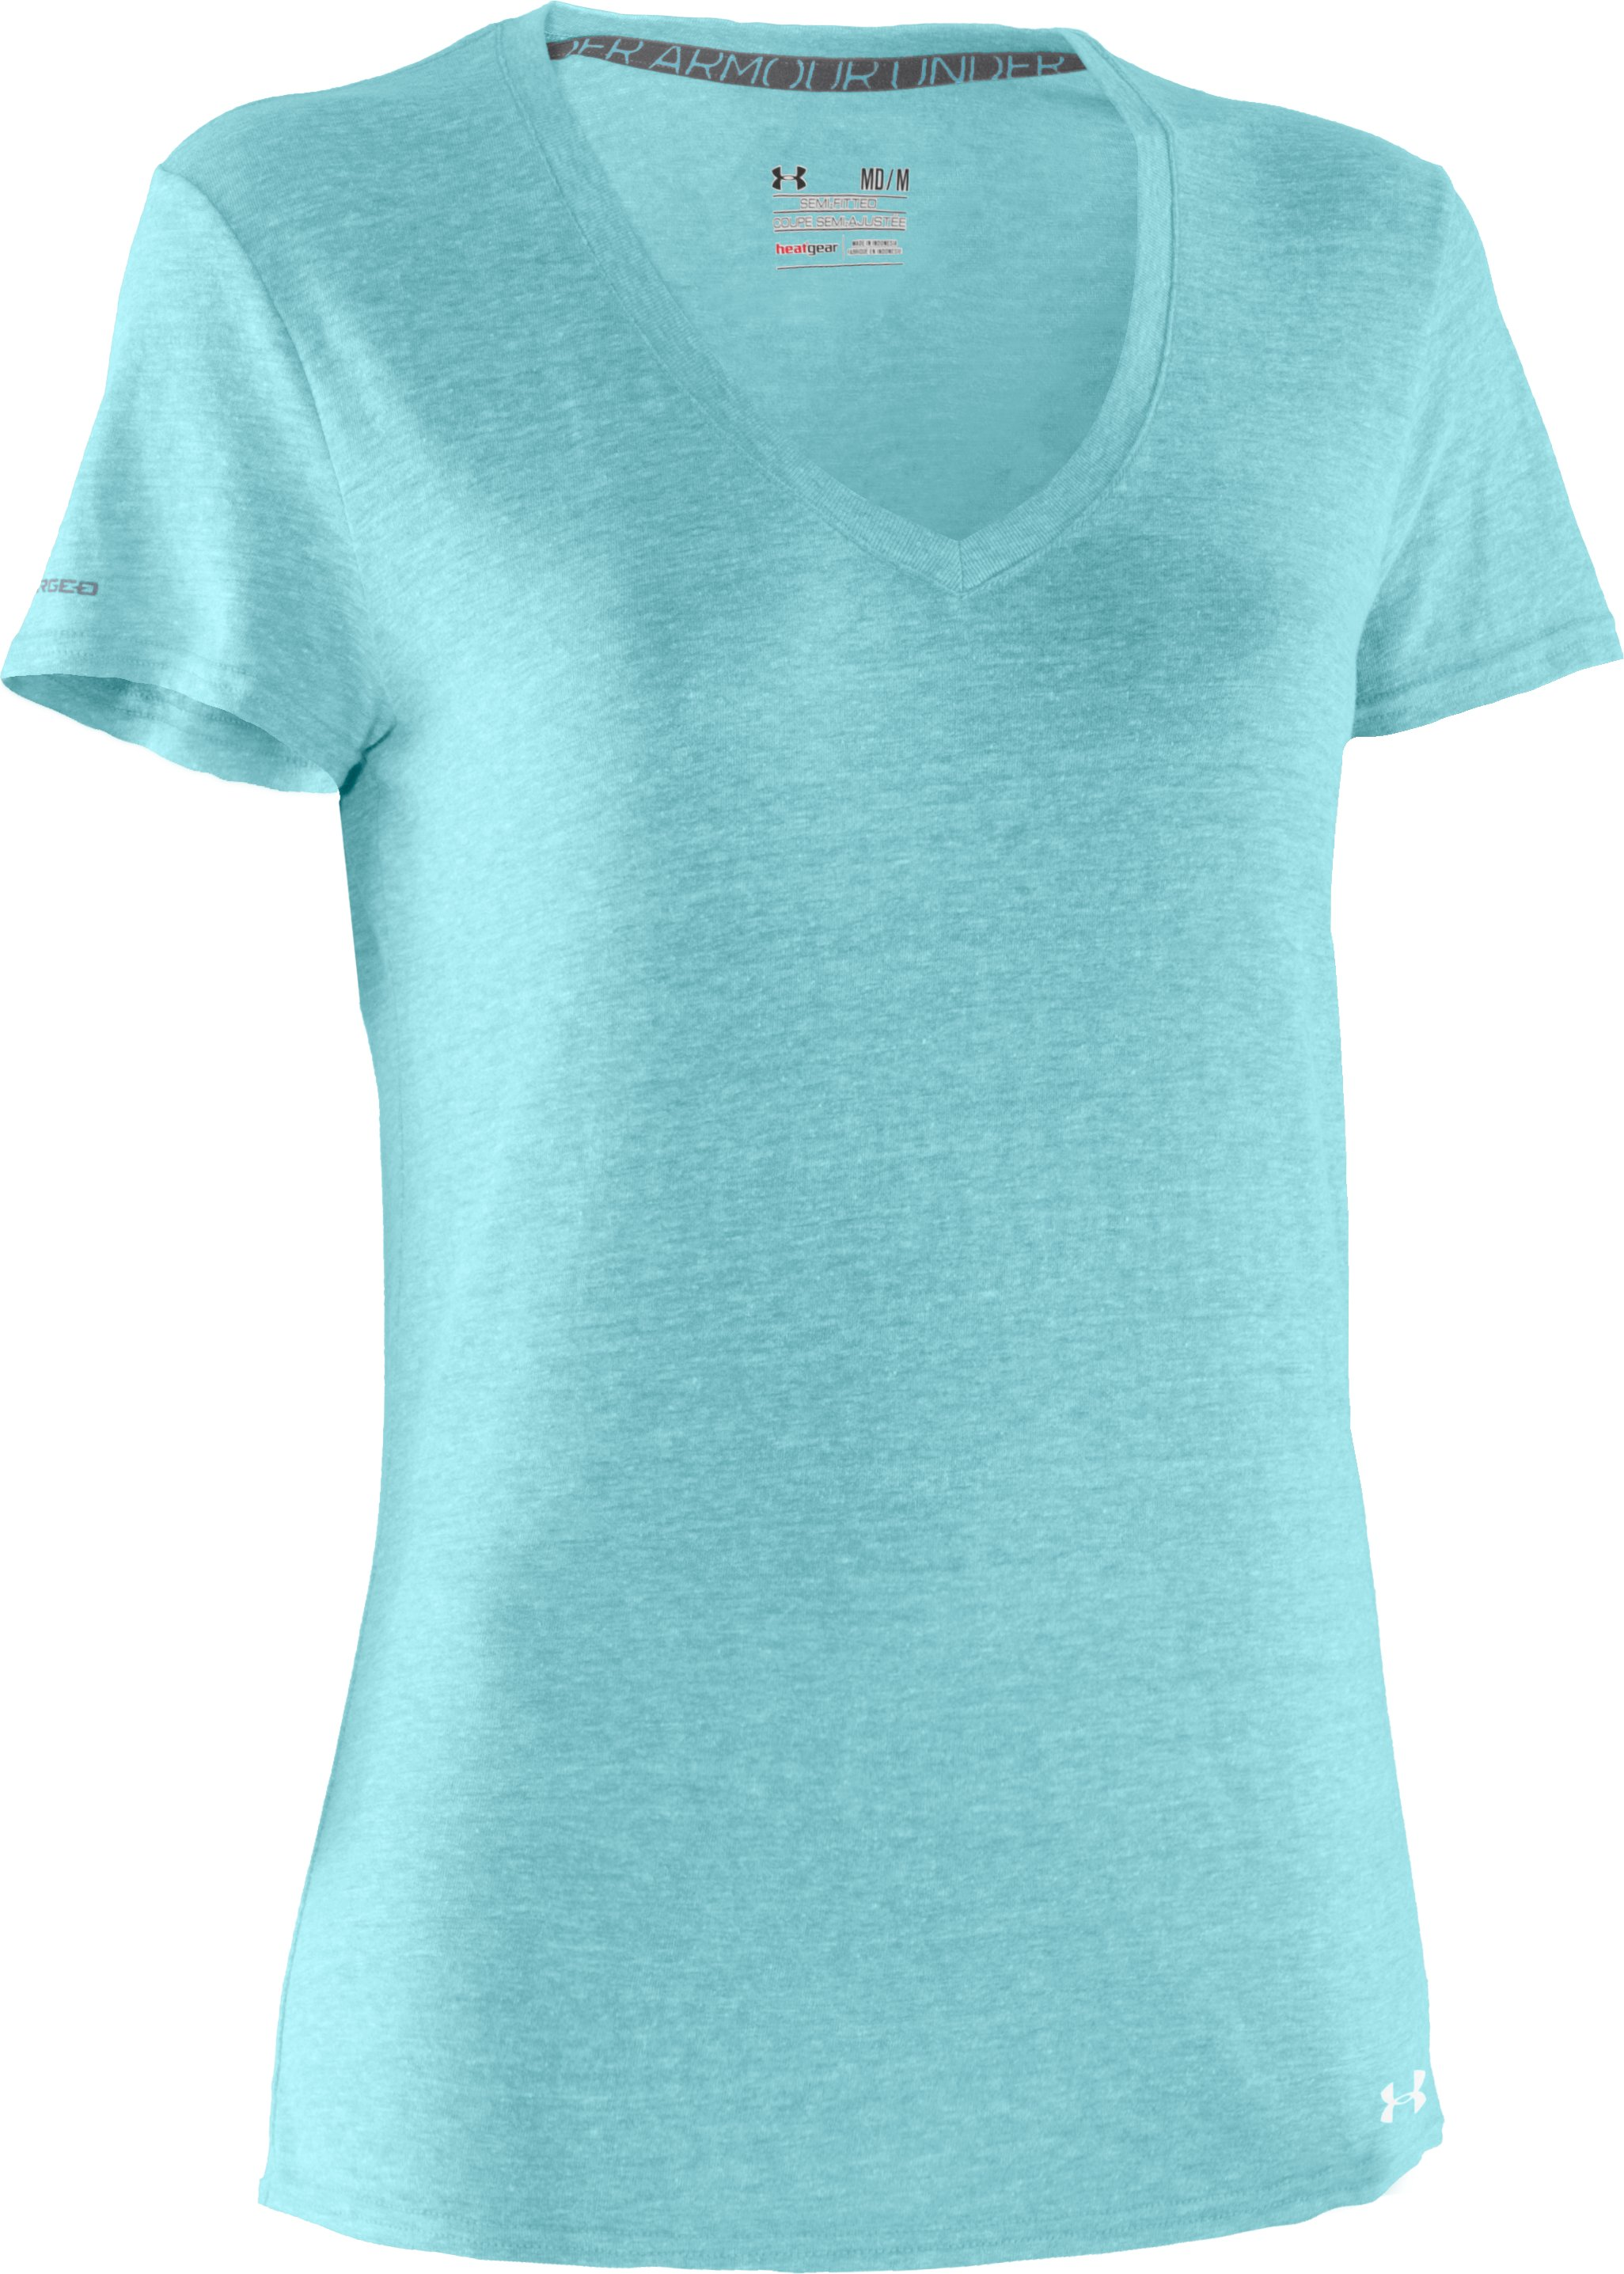 Women's Charged Cotton® Undeniable T-Shirt, Veneer, undefined